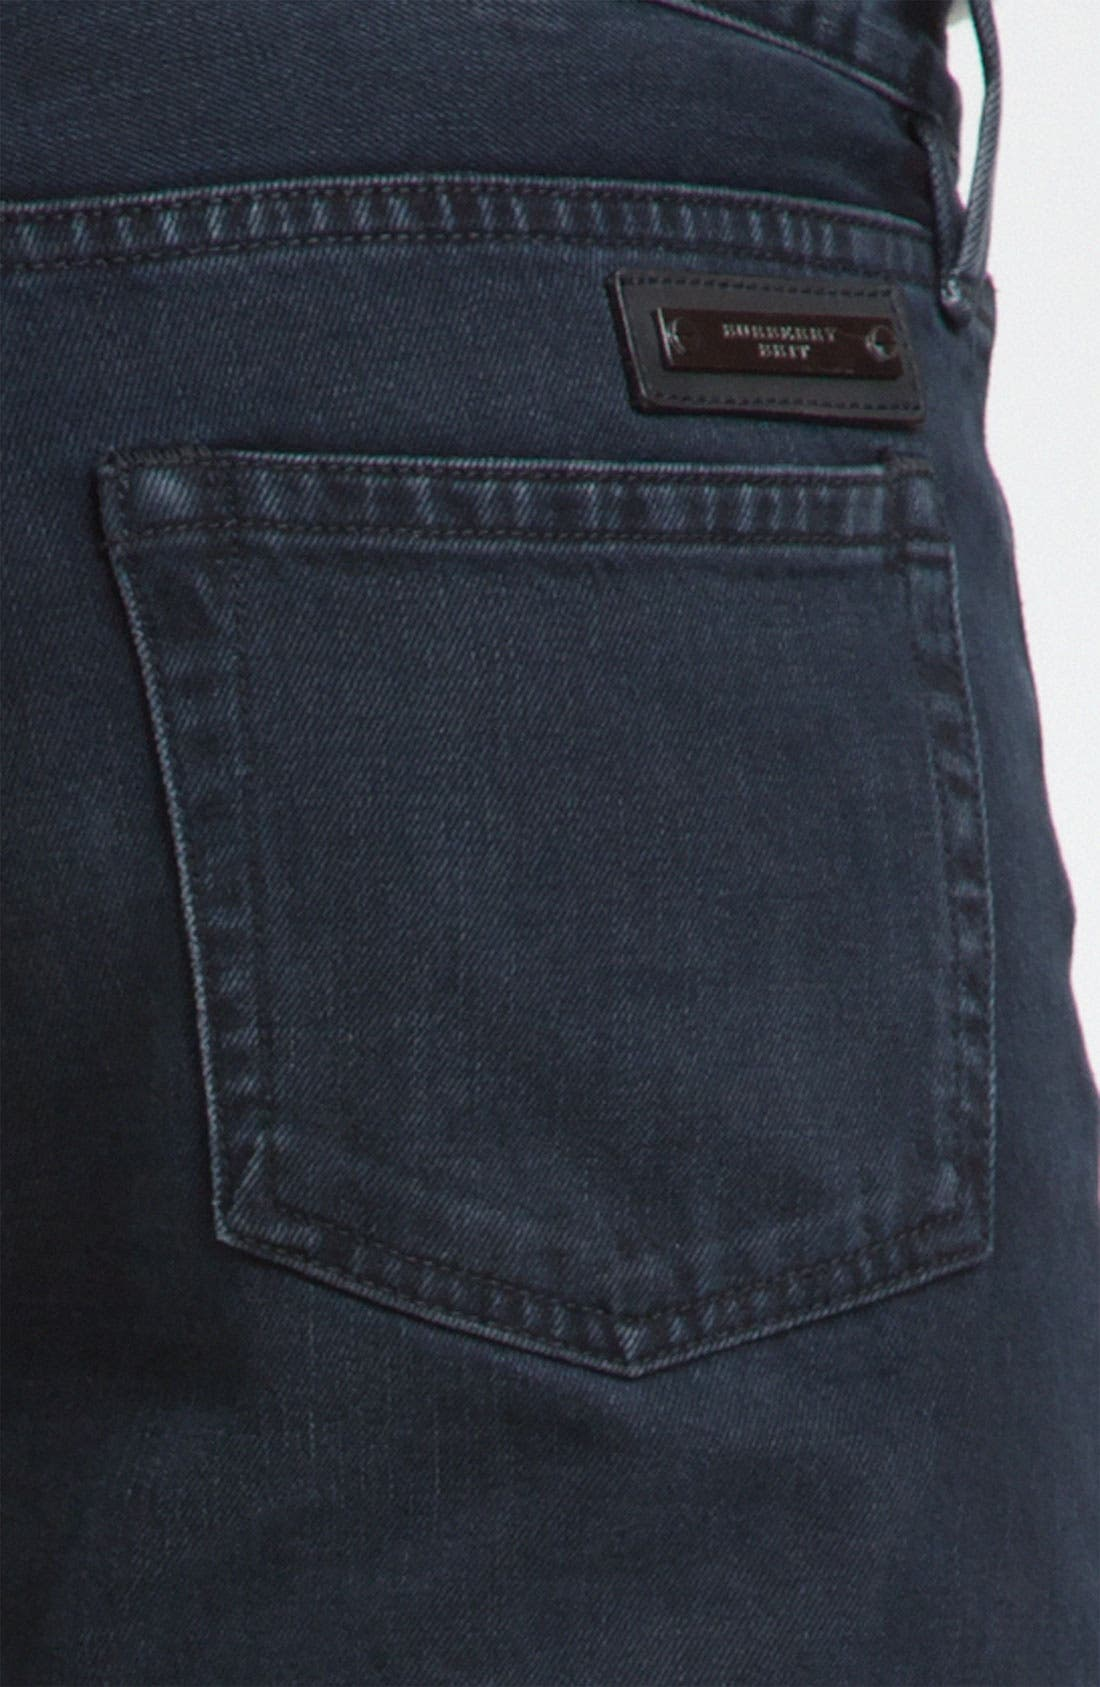 Alternate Image 3  - Burberry Brit Straight Leg Jeans (Supersoft Black)